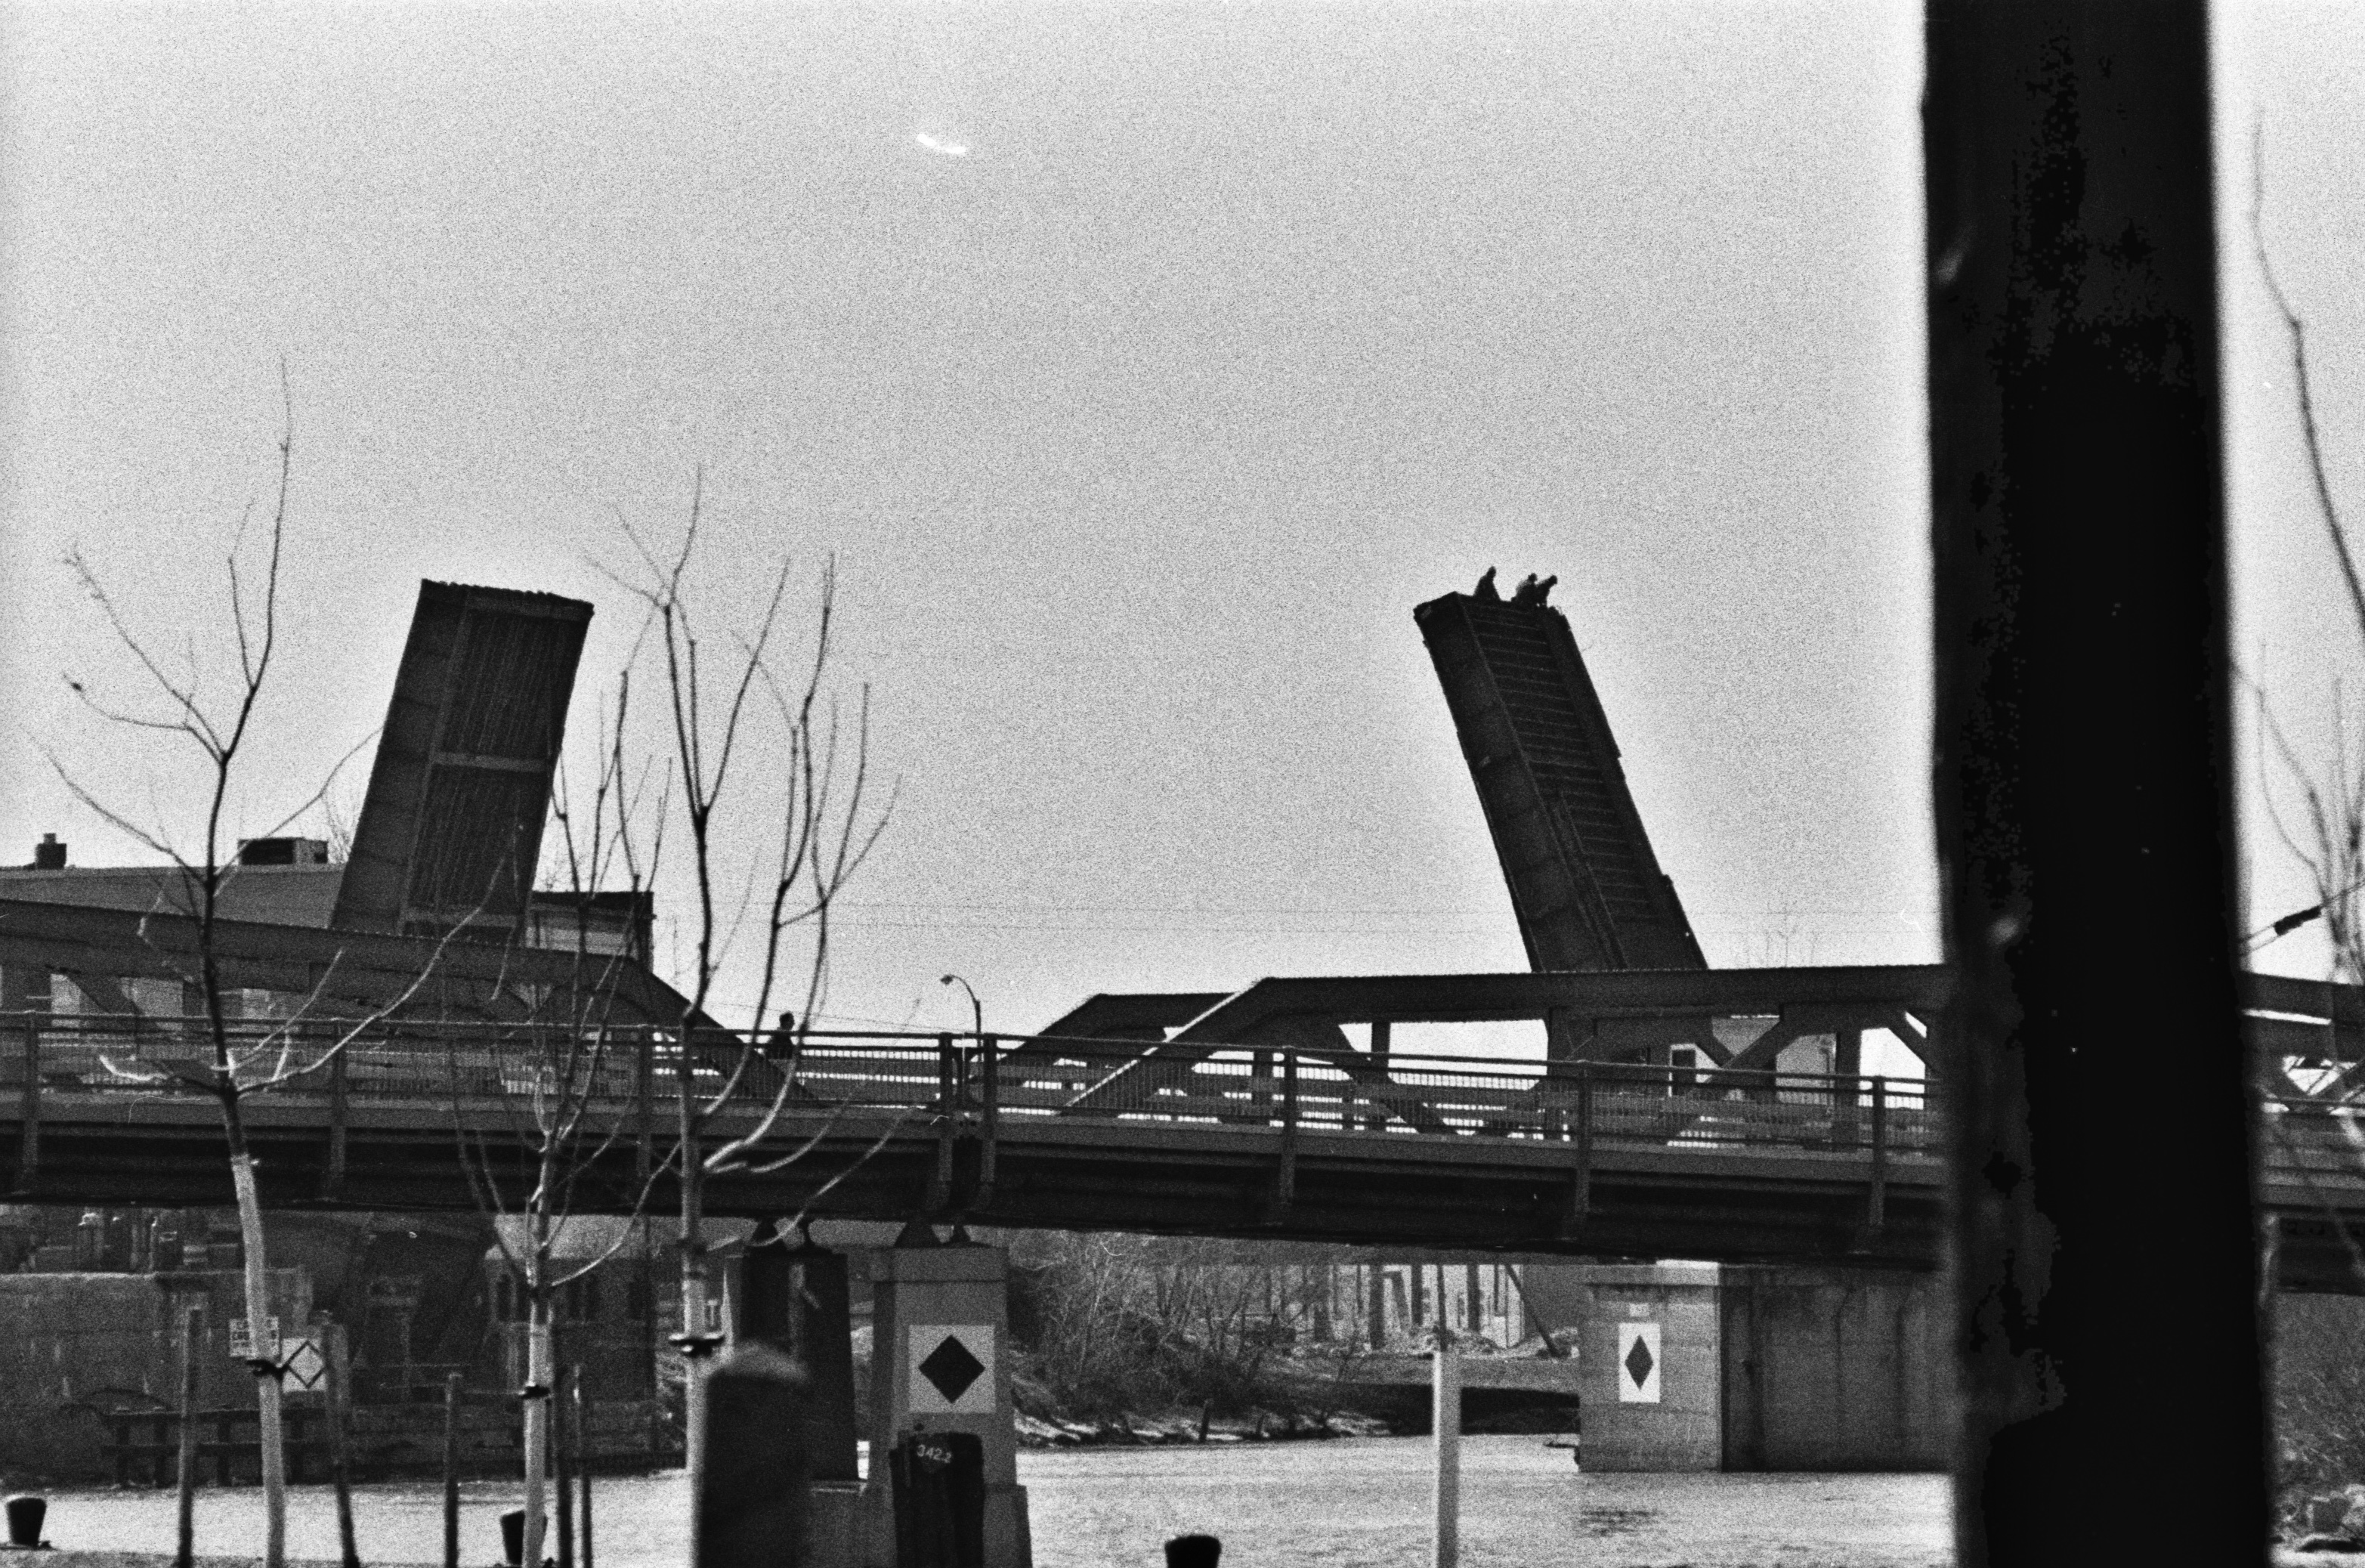 Bascule Bridge demolition 7, hi-res (1978).jpg